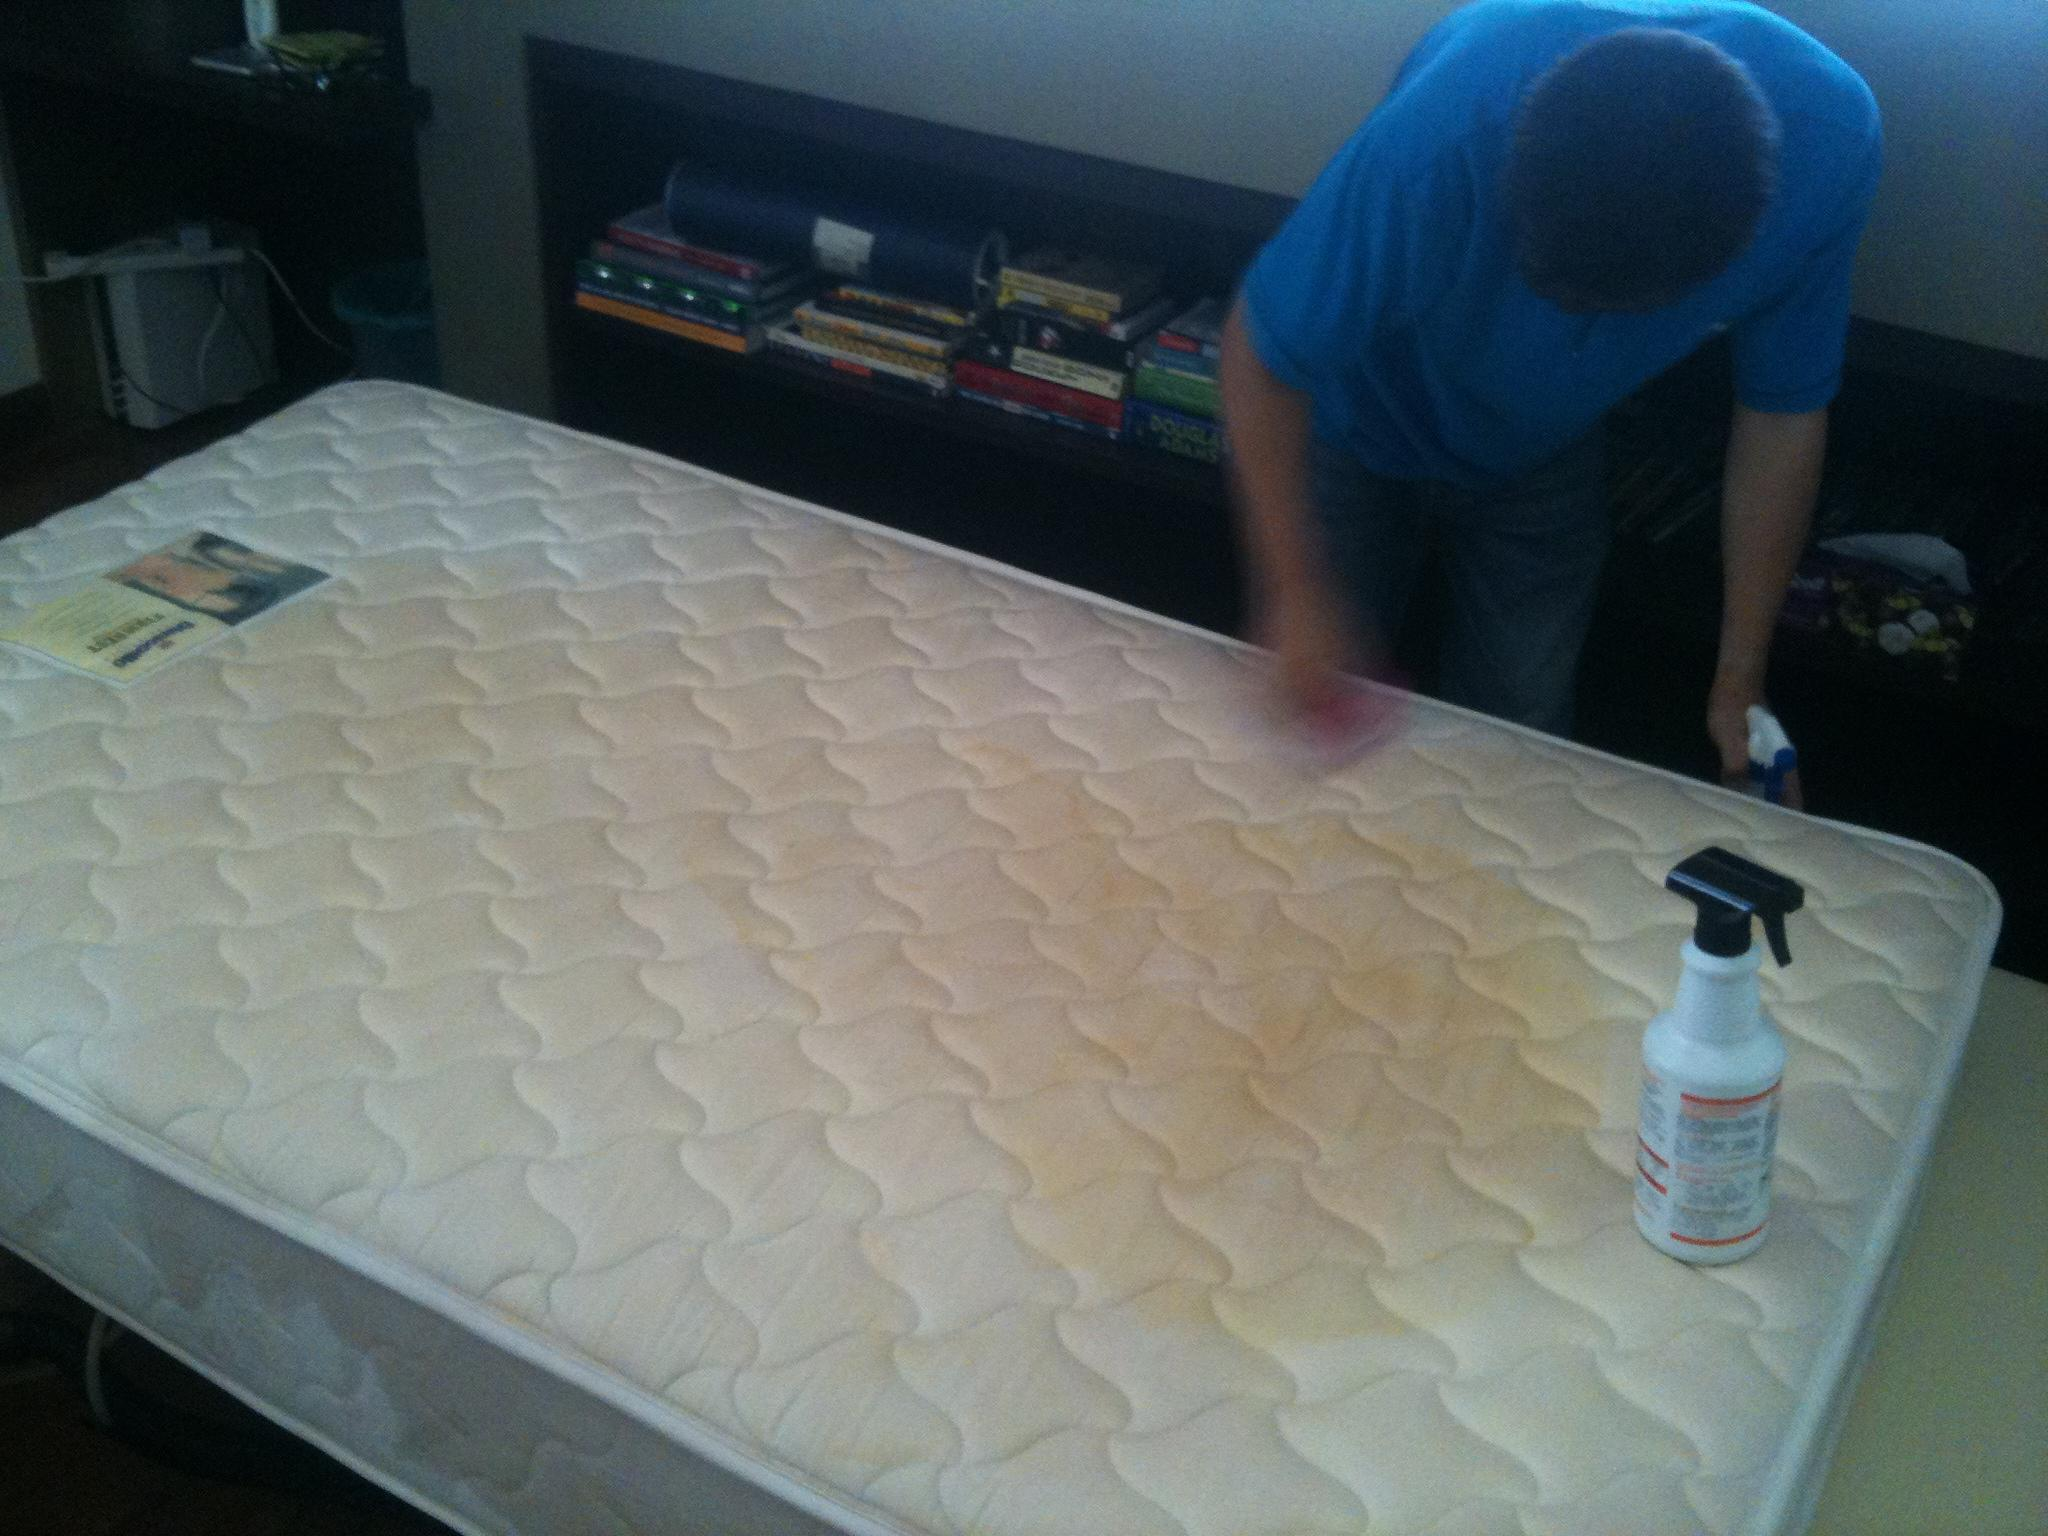 how to clean coffee stain on mattress